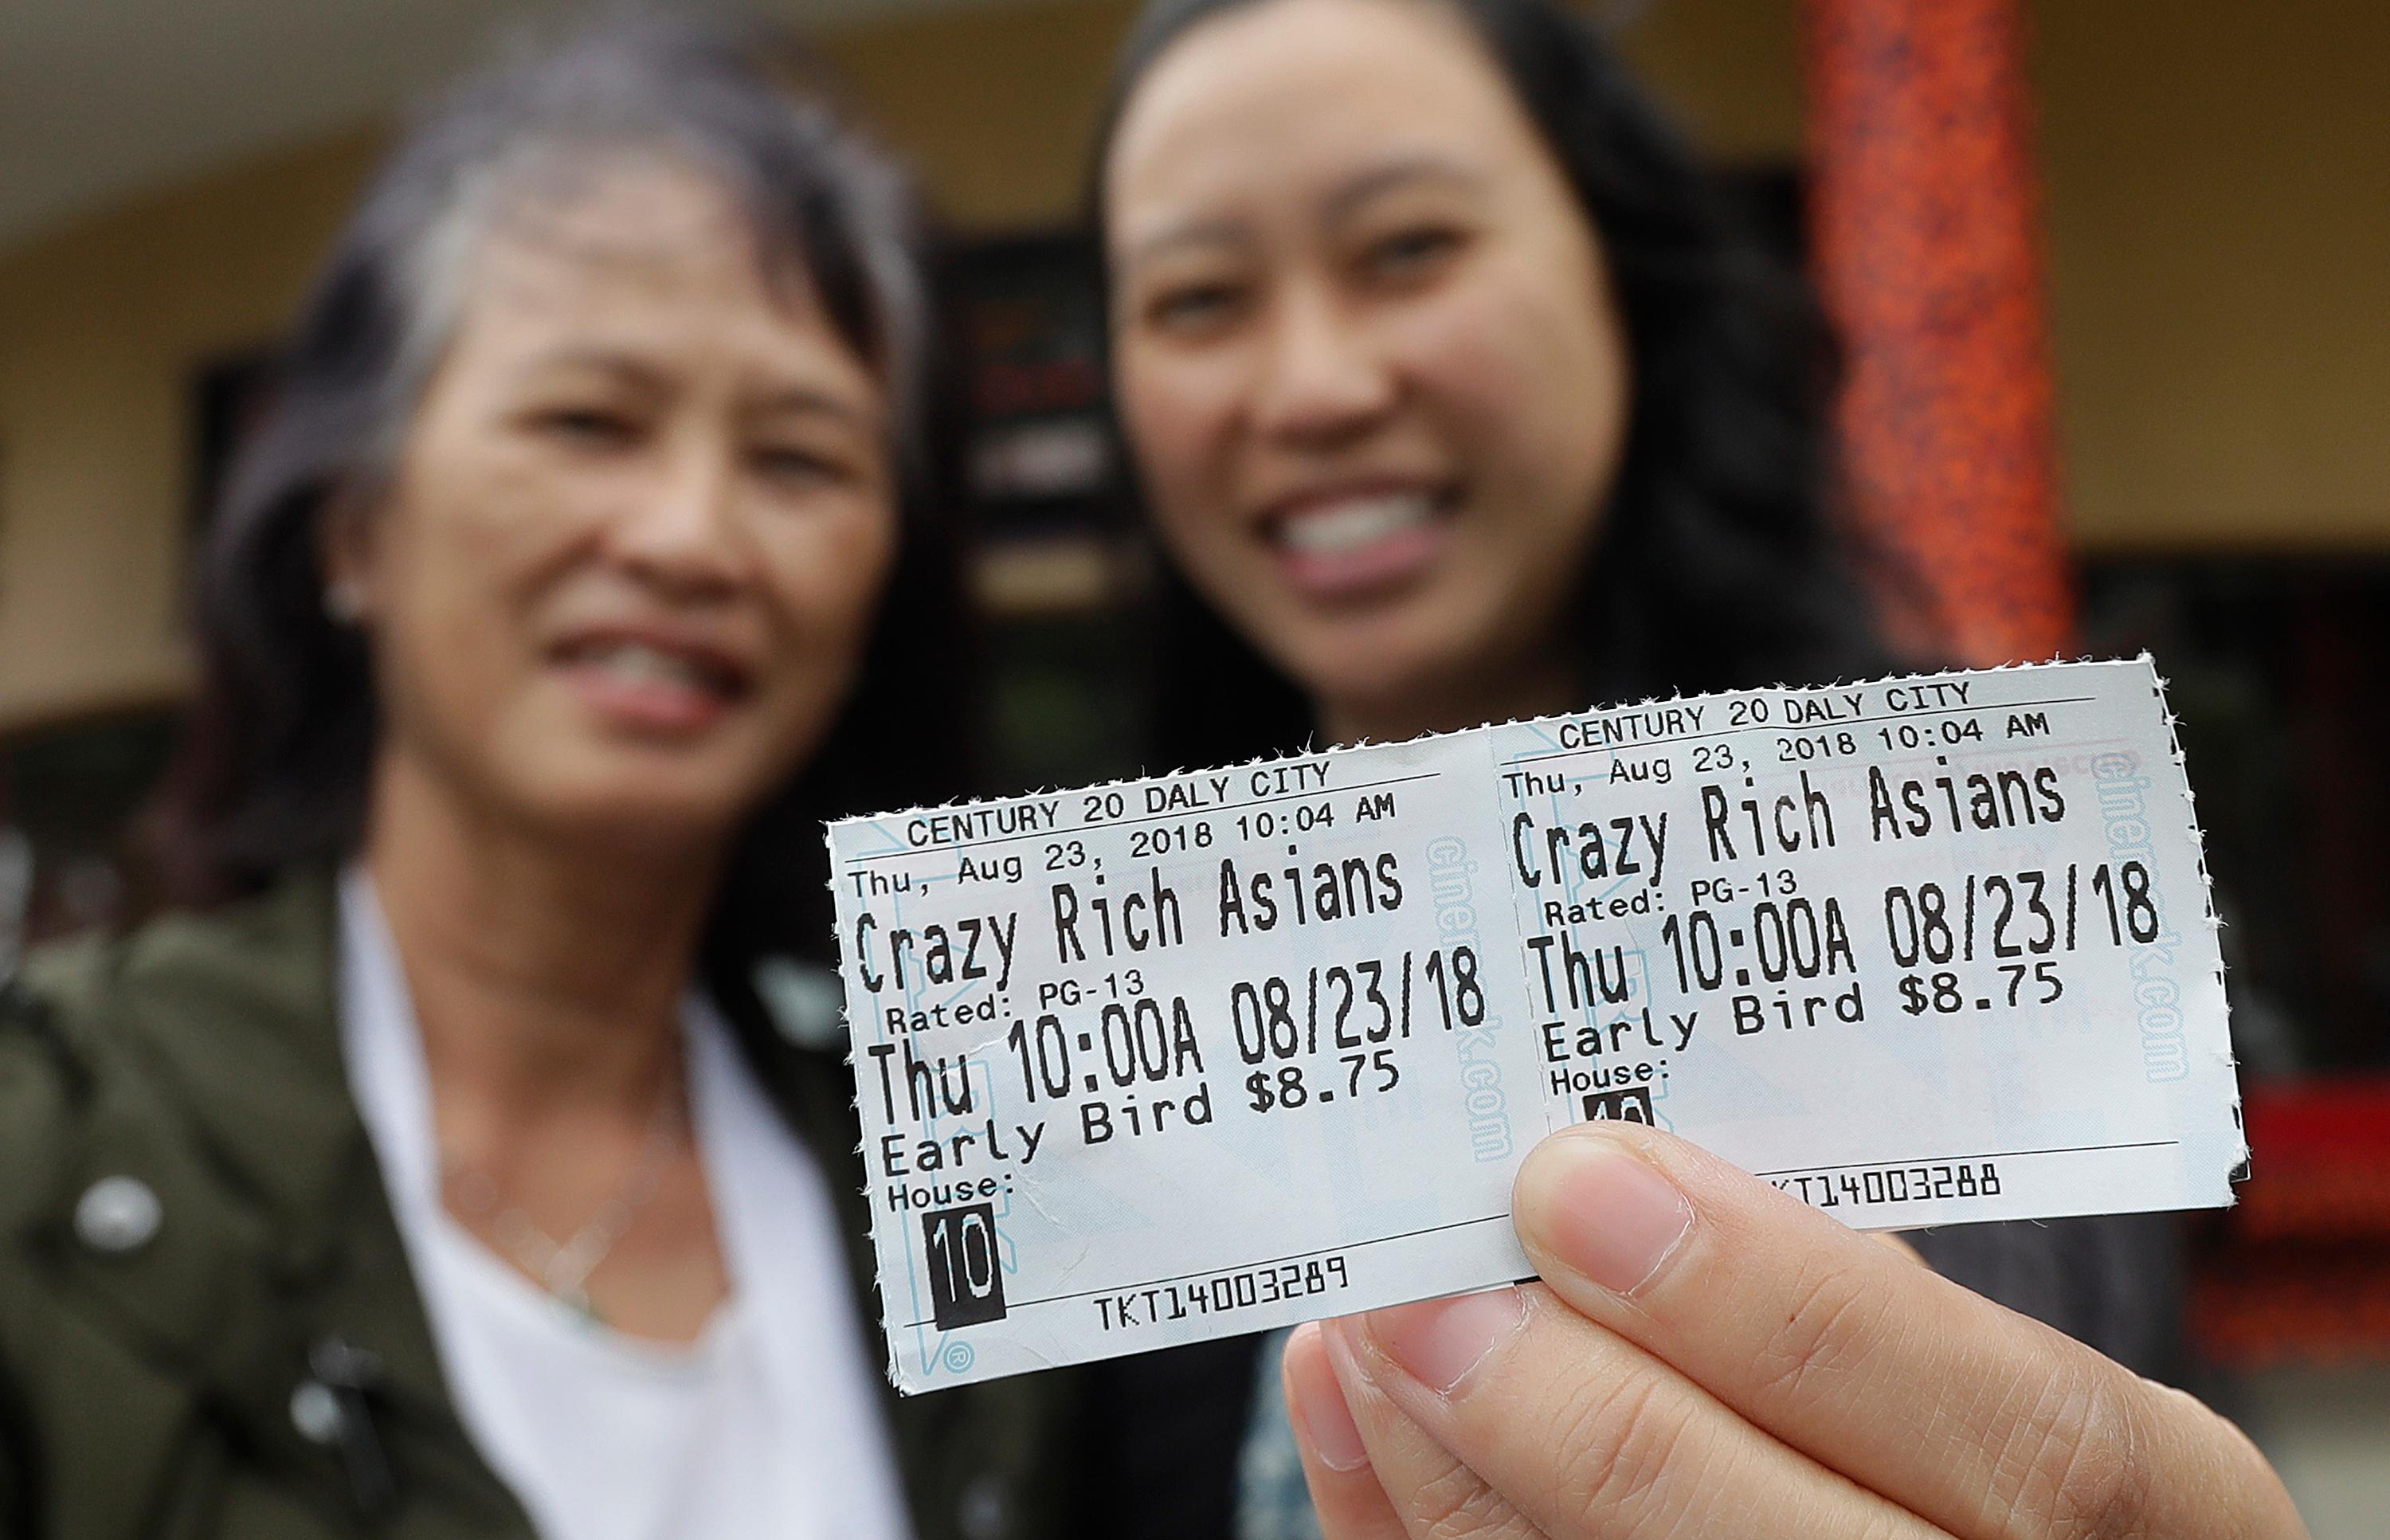 In this Thursday, Aug. 23, 2018 photo, Audrey Sue-Matsumoto, right, holds tickets as she poses for photos with her mother Alice Sue while interviewed outside of a movie theater after watching the movie Crazy Rich Asians in Daly City, Calif. It was Alice Sue's second time watching the movie. (AP Photo/Jeff Chiu)